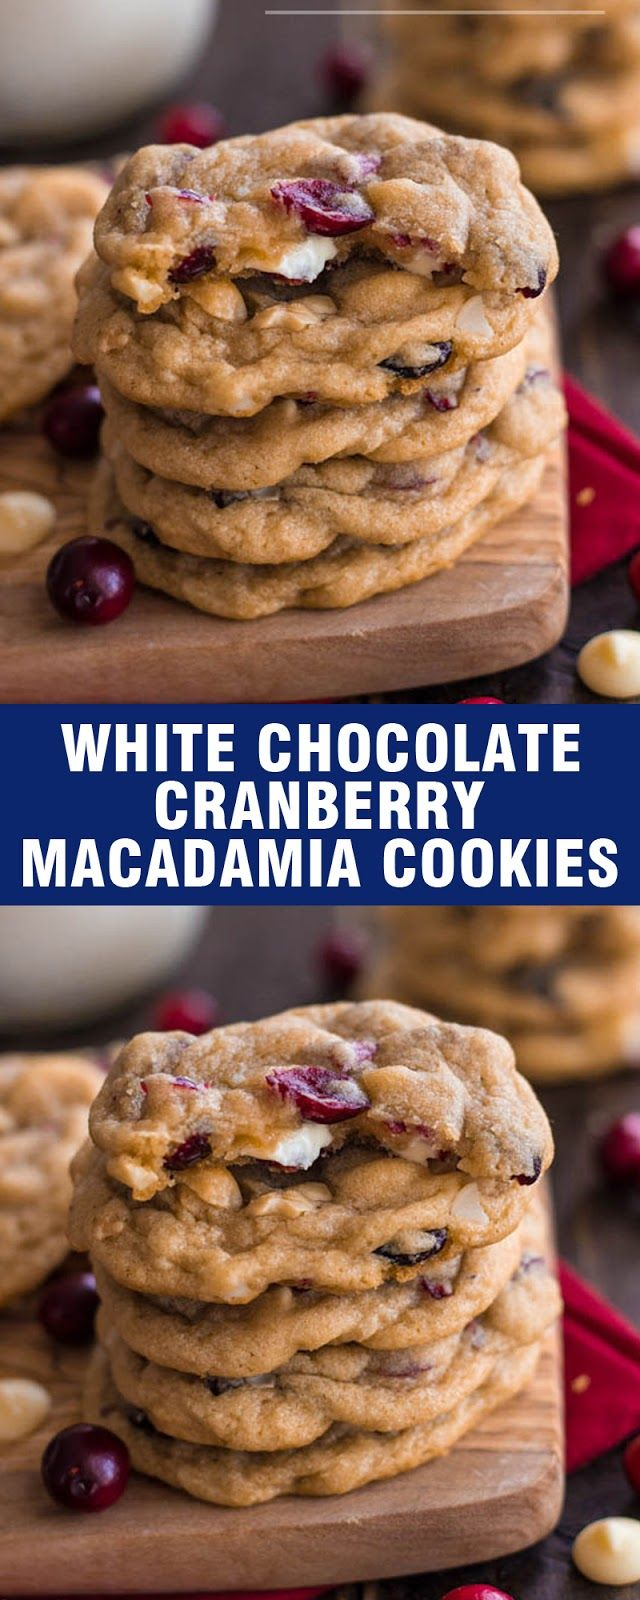 WHITE CHOCOLATE CRANBERRY MACADAMIA COOKIES -   7 cake White cranberry cookies ideas